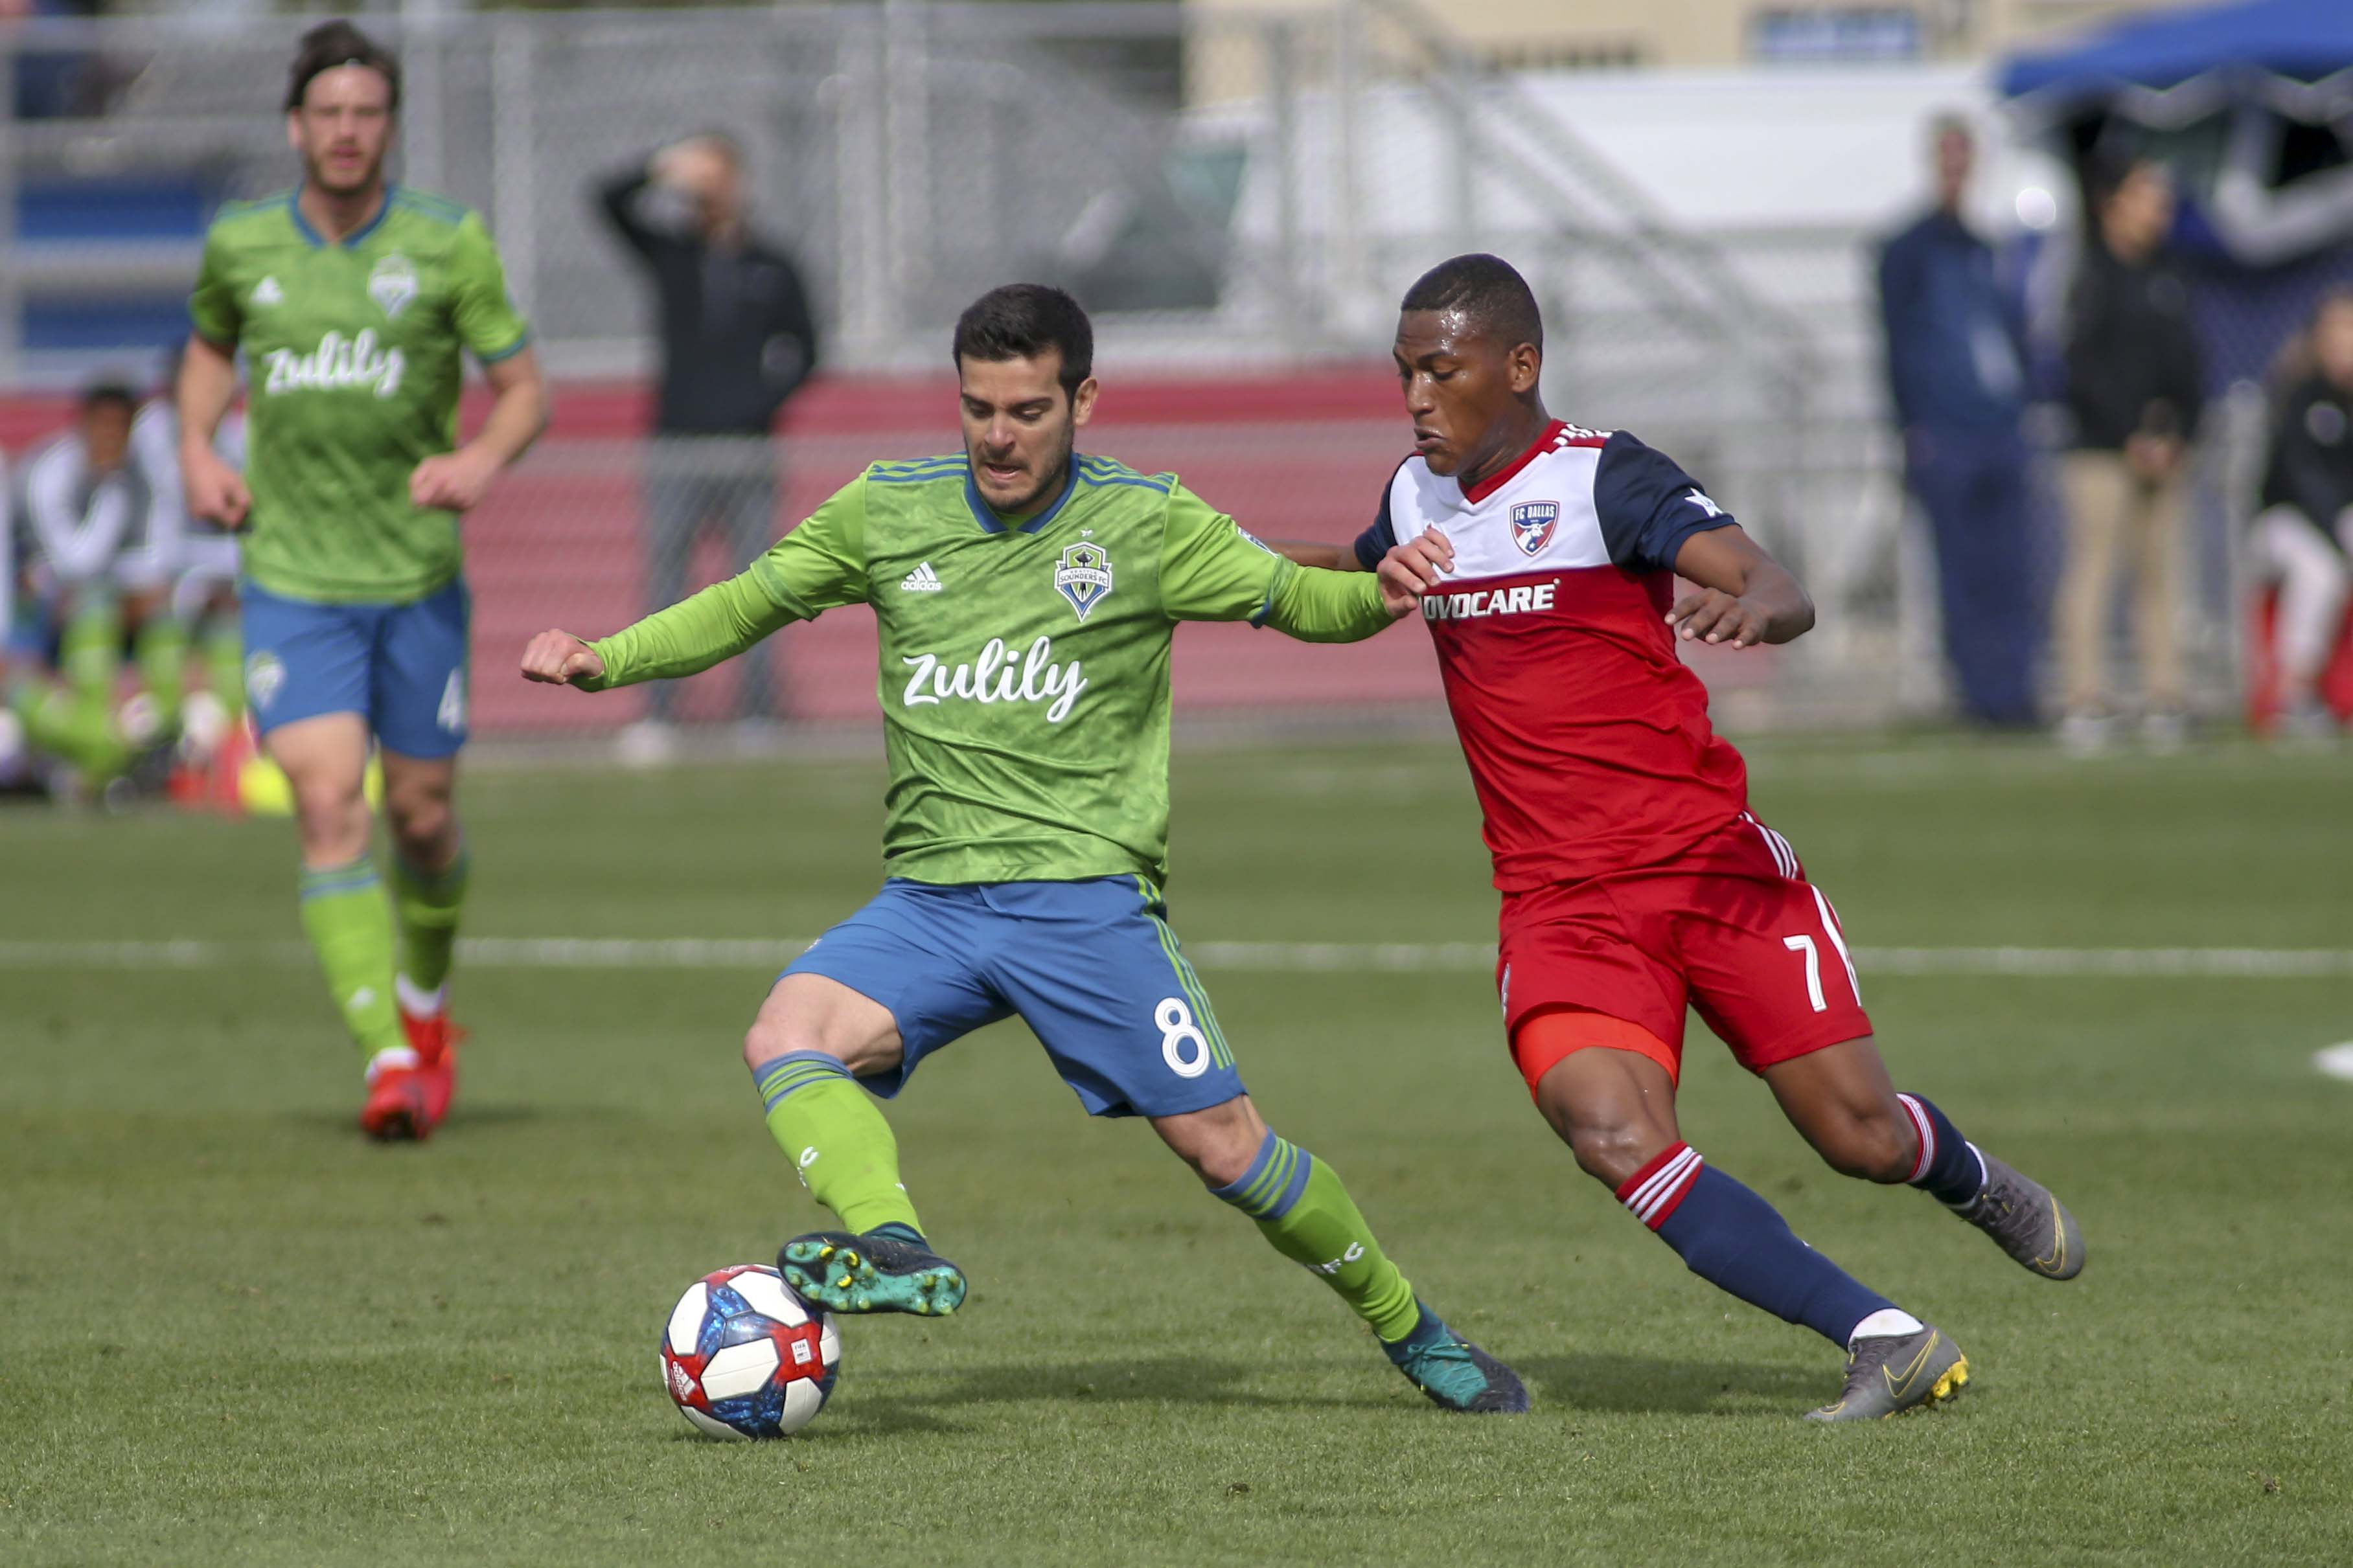 2eb3991cd2c Here s where the Sounders stand going into 2019 - Sounder At Heart